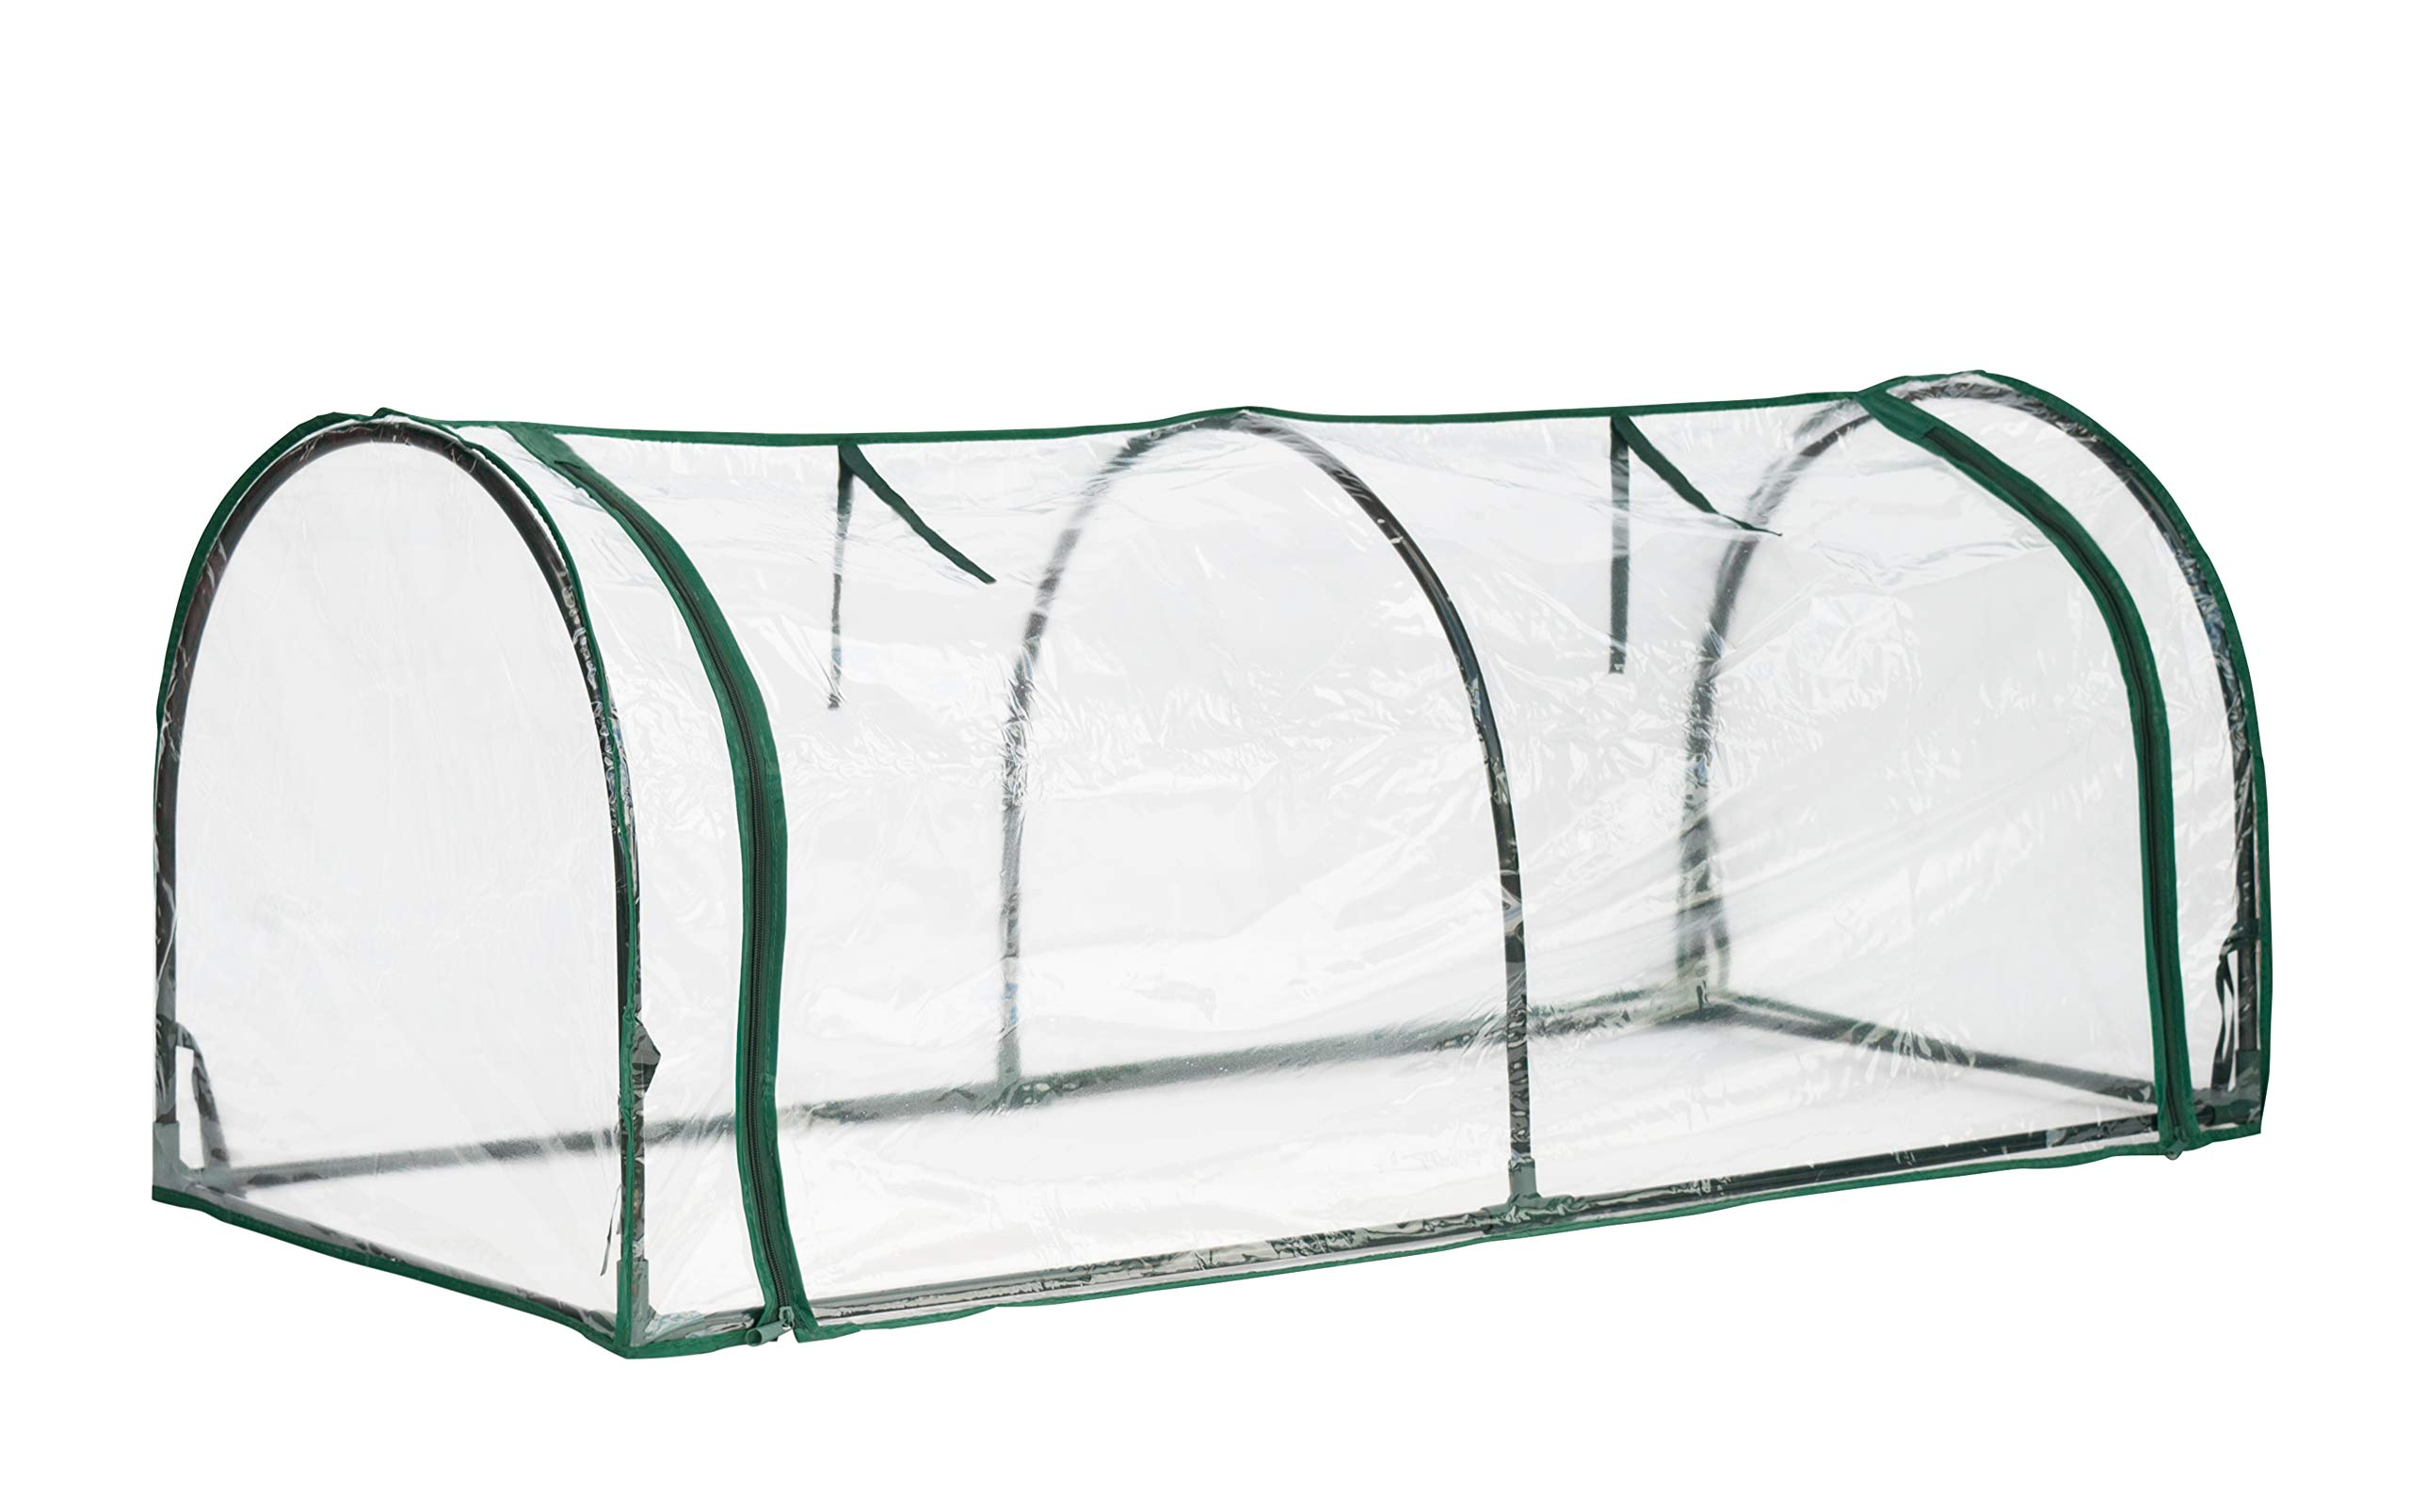 Topline Outdoor Mini Garden Greenhouse with Zipper Openings - 51 Inch